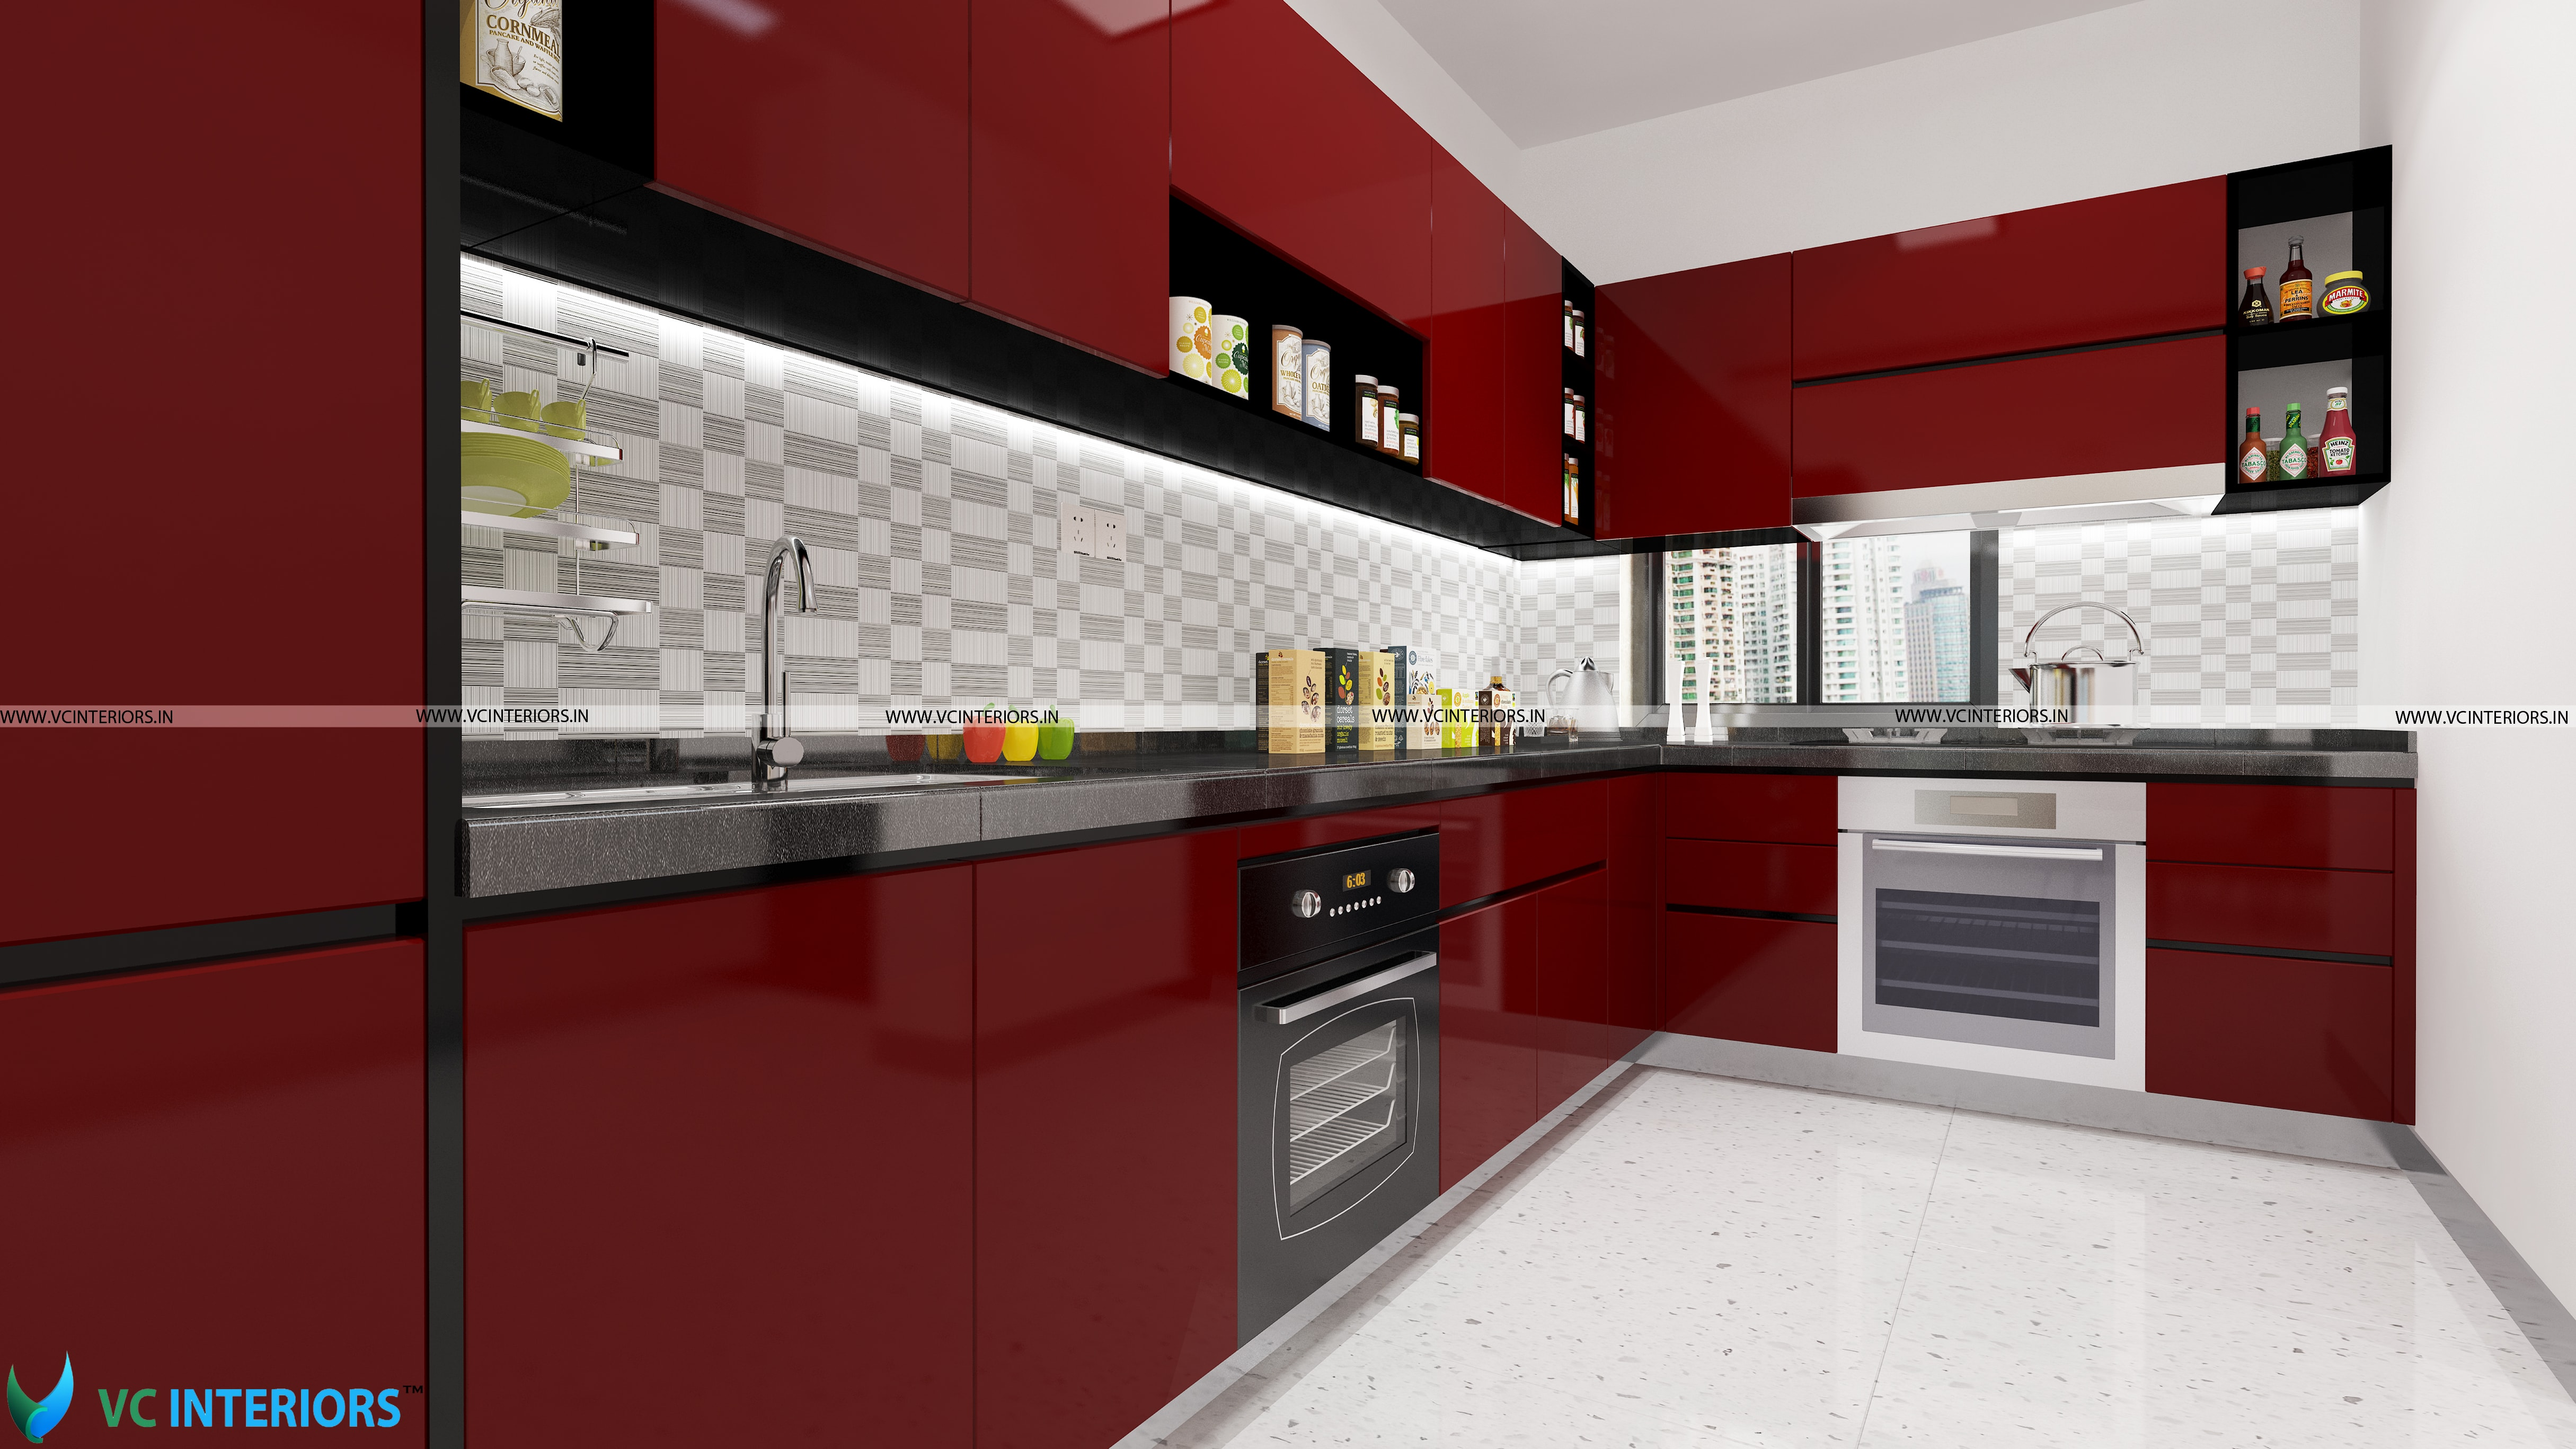 modular kitchen-vcinteriors